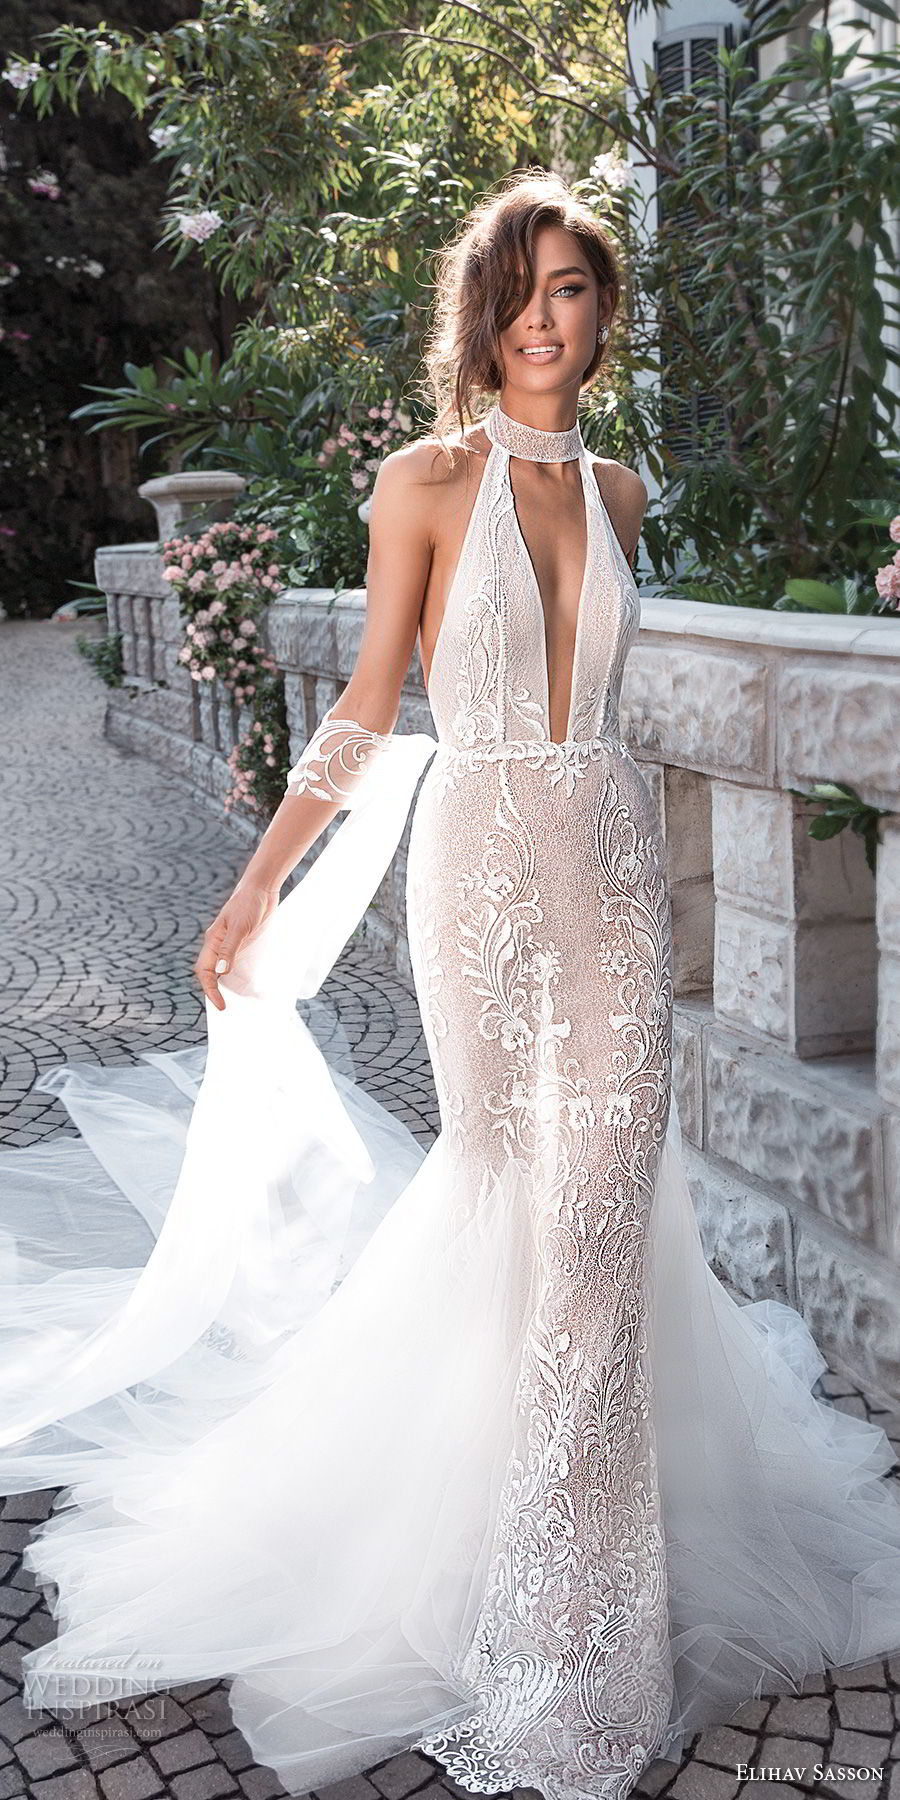 elihav sasson 2018 capsule bridal sleeveless high neck deep plunging v neck full embellishment sexy elegant fit and flare mermaid wedding dress open back chapel train (8) mv